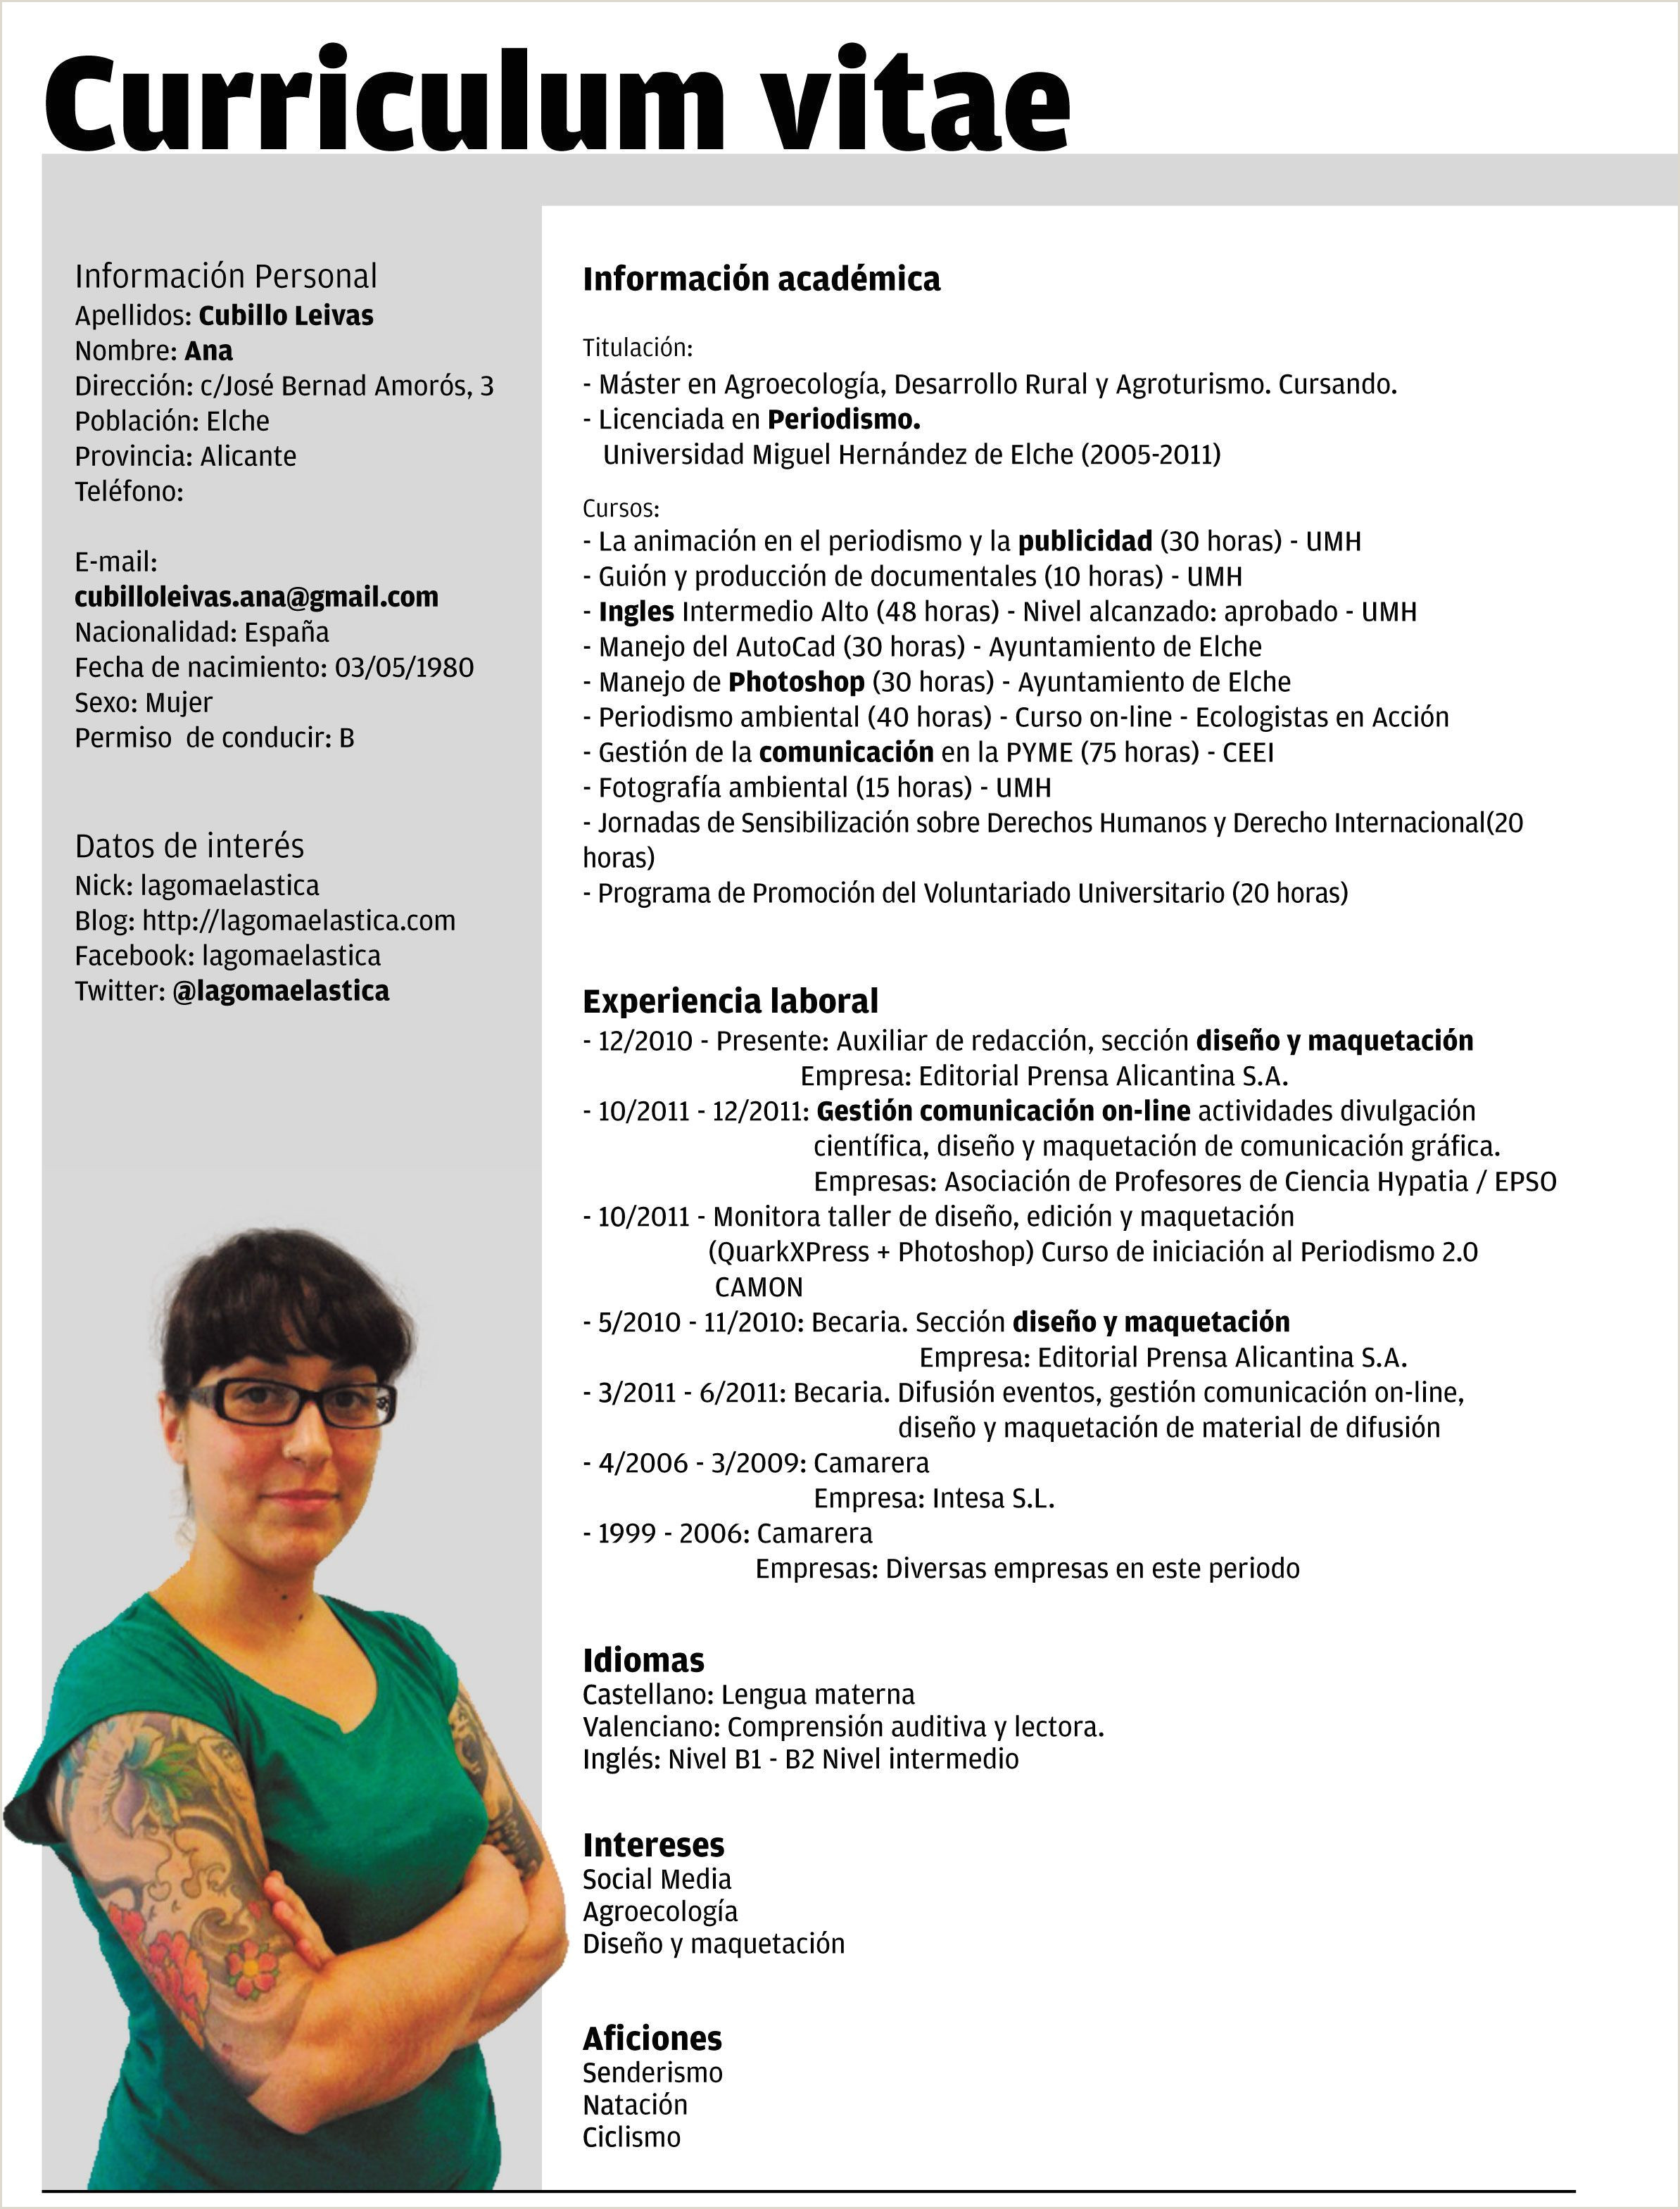 Curriculum vitae hp searcher Artigo September 2019